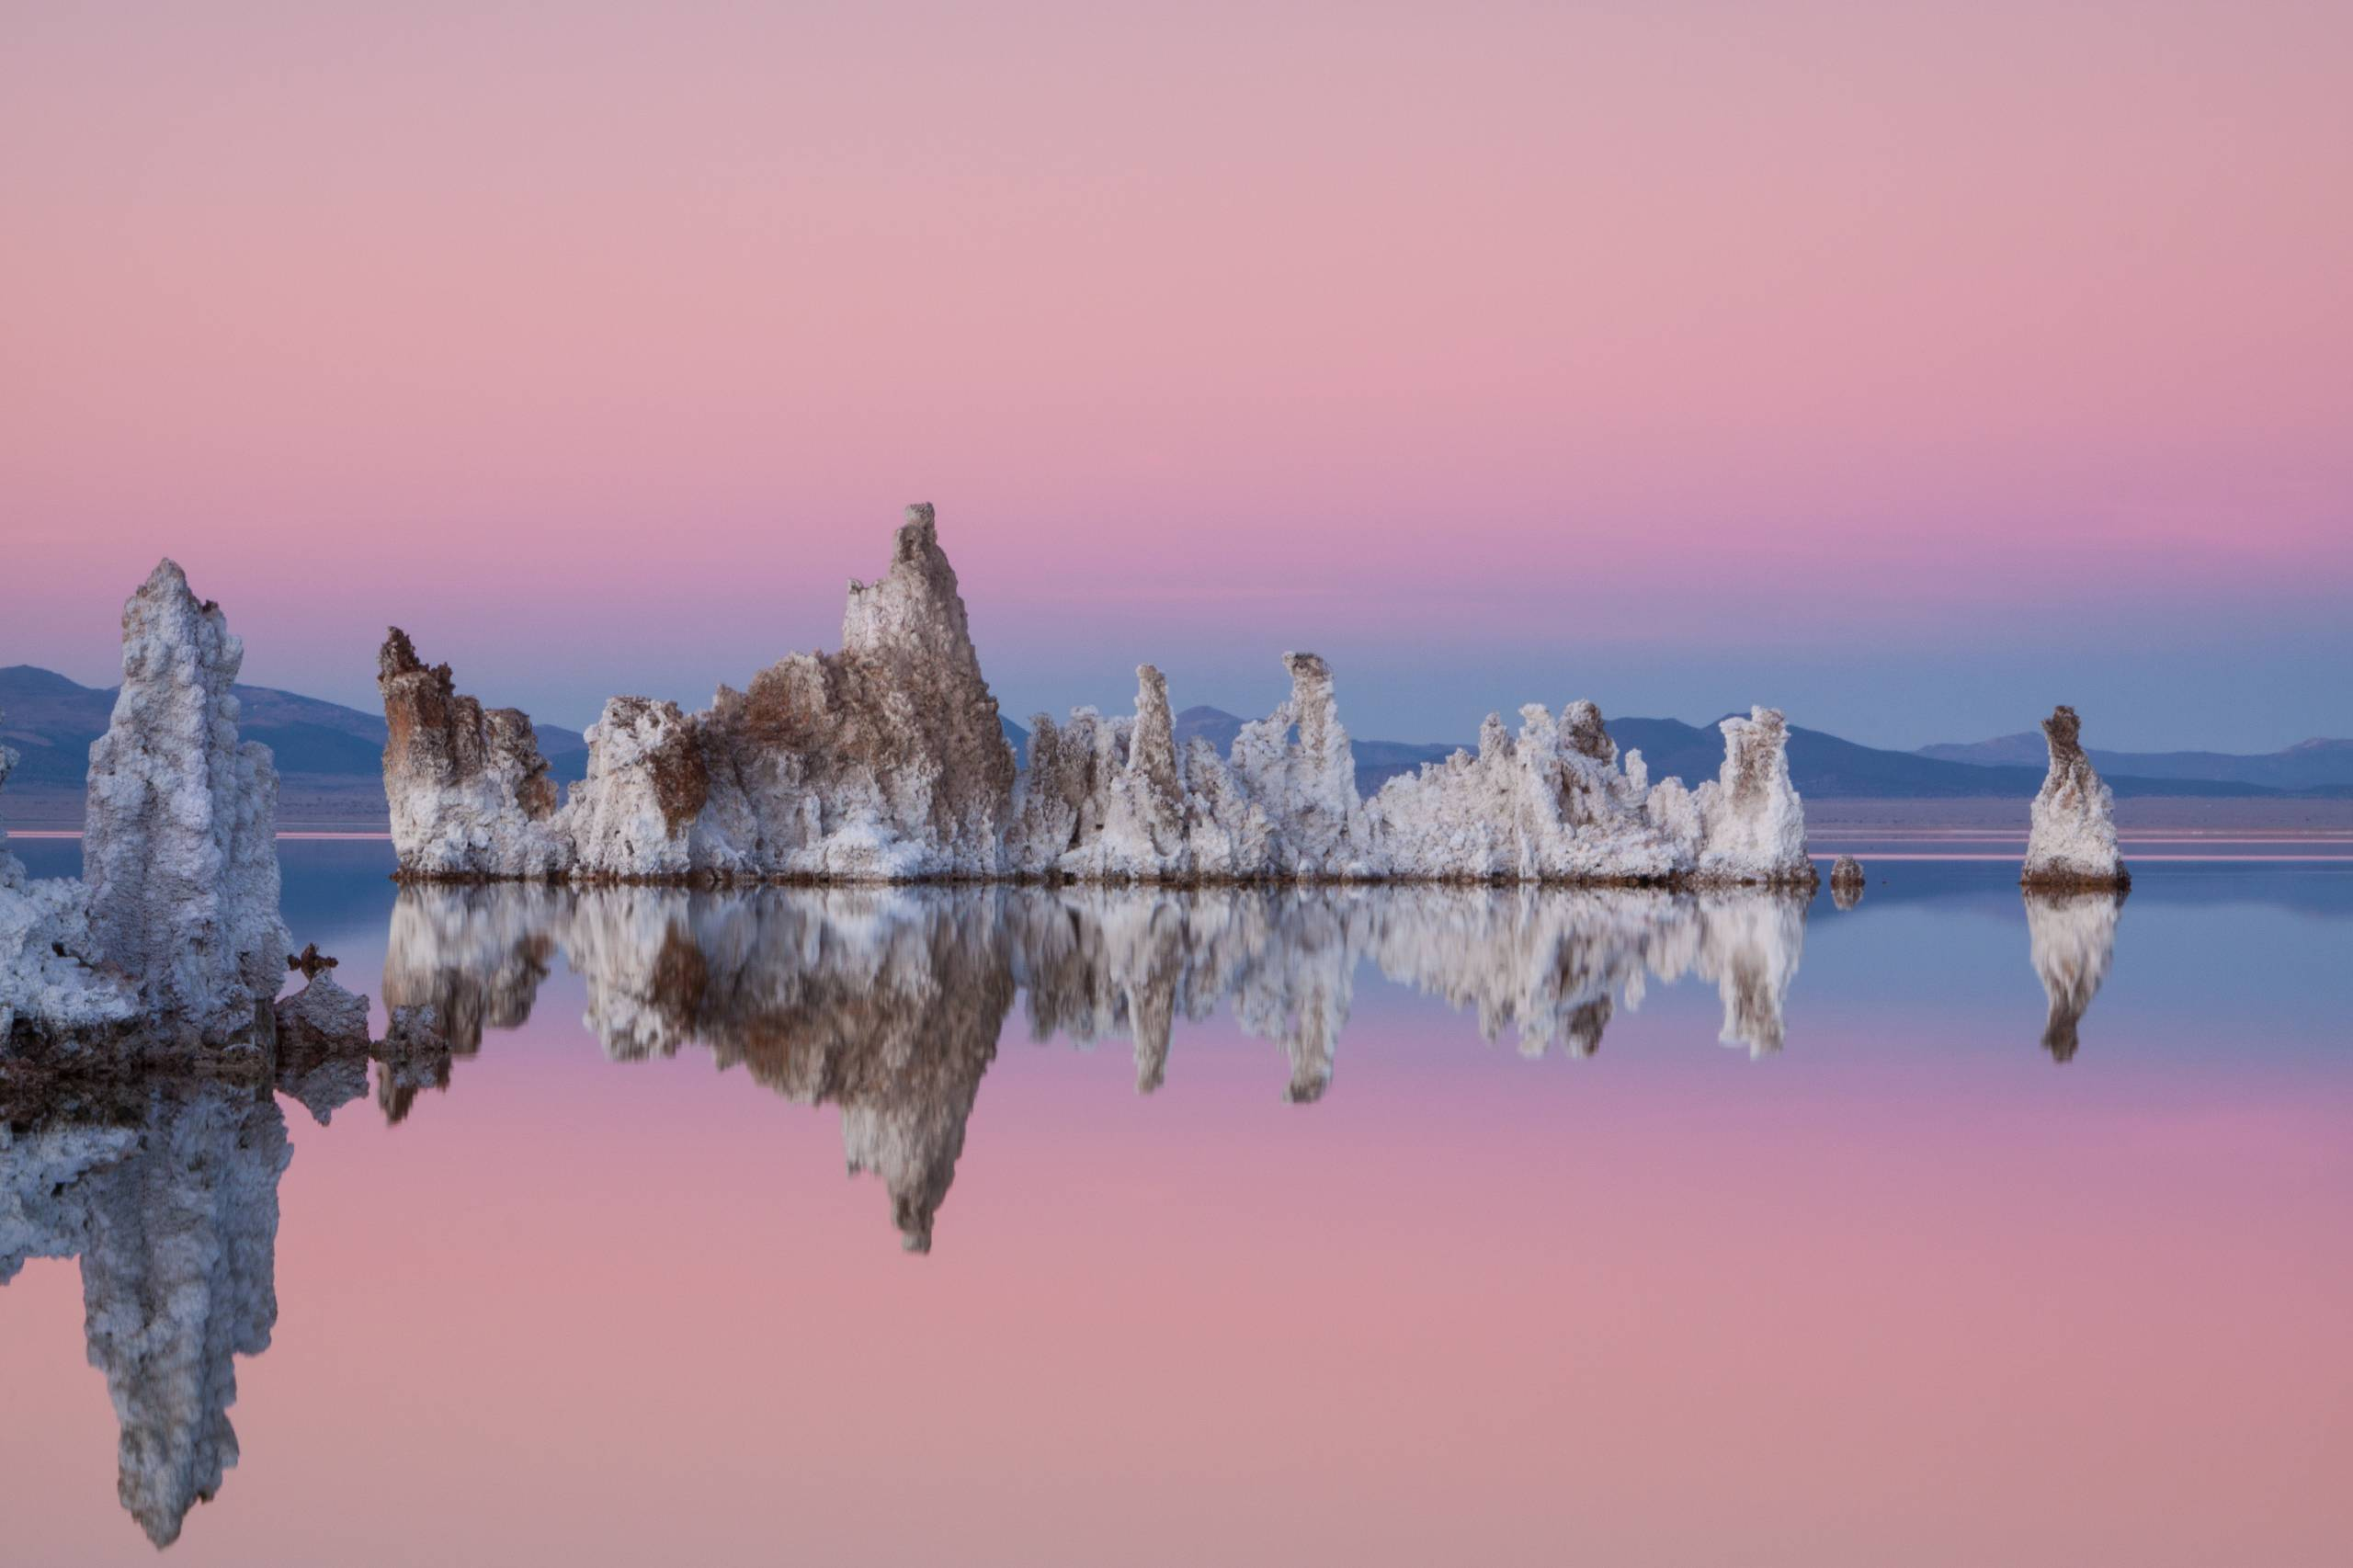 Mono_Lake_by_Angela_Henderson.jpg